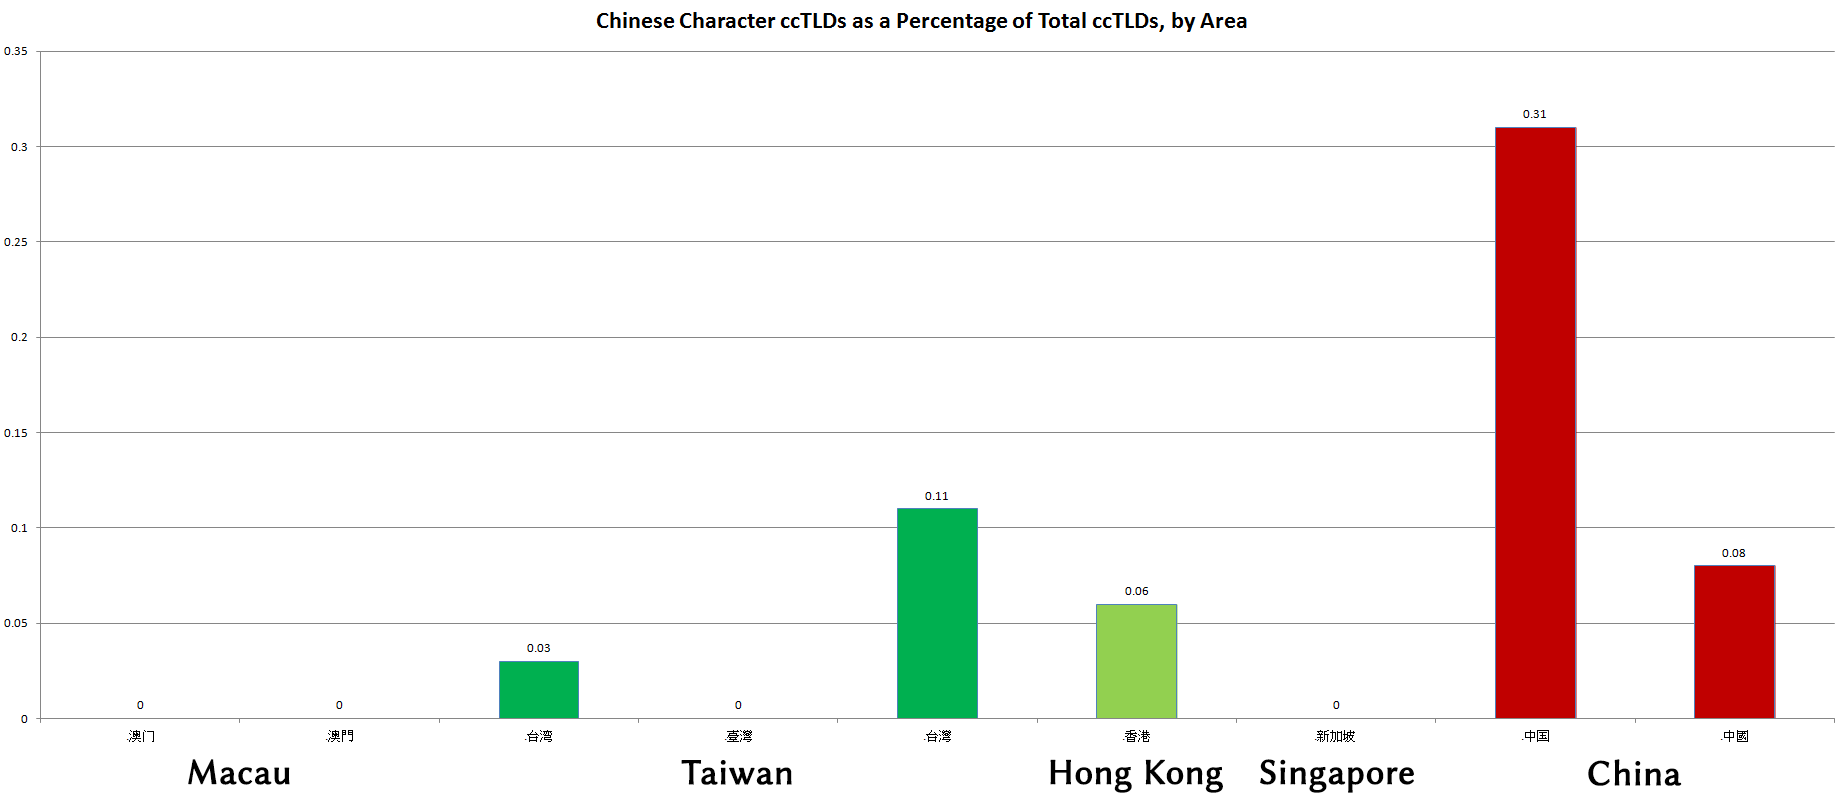 Graph showing that although China leads in domains in Chinese characters, they do not reach even one half of one percent of the total for China